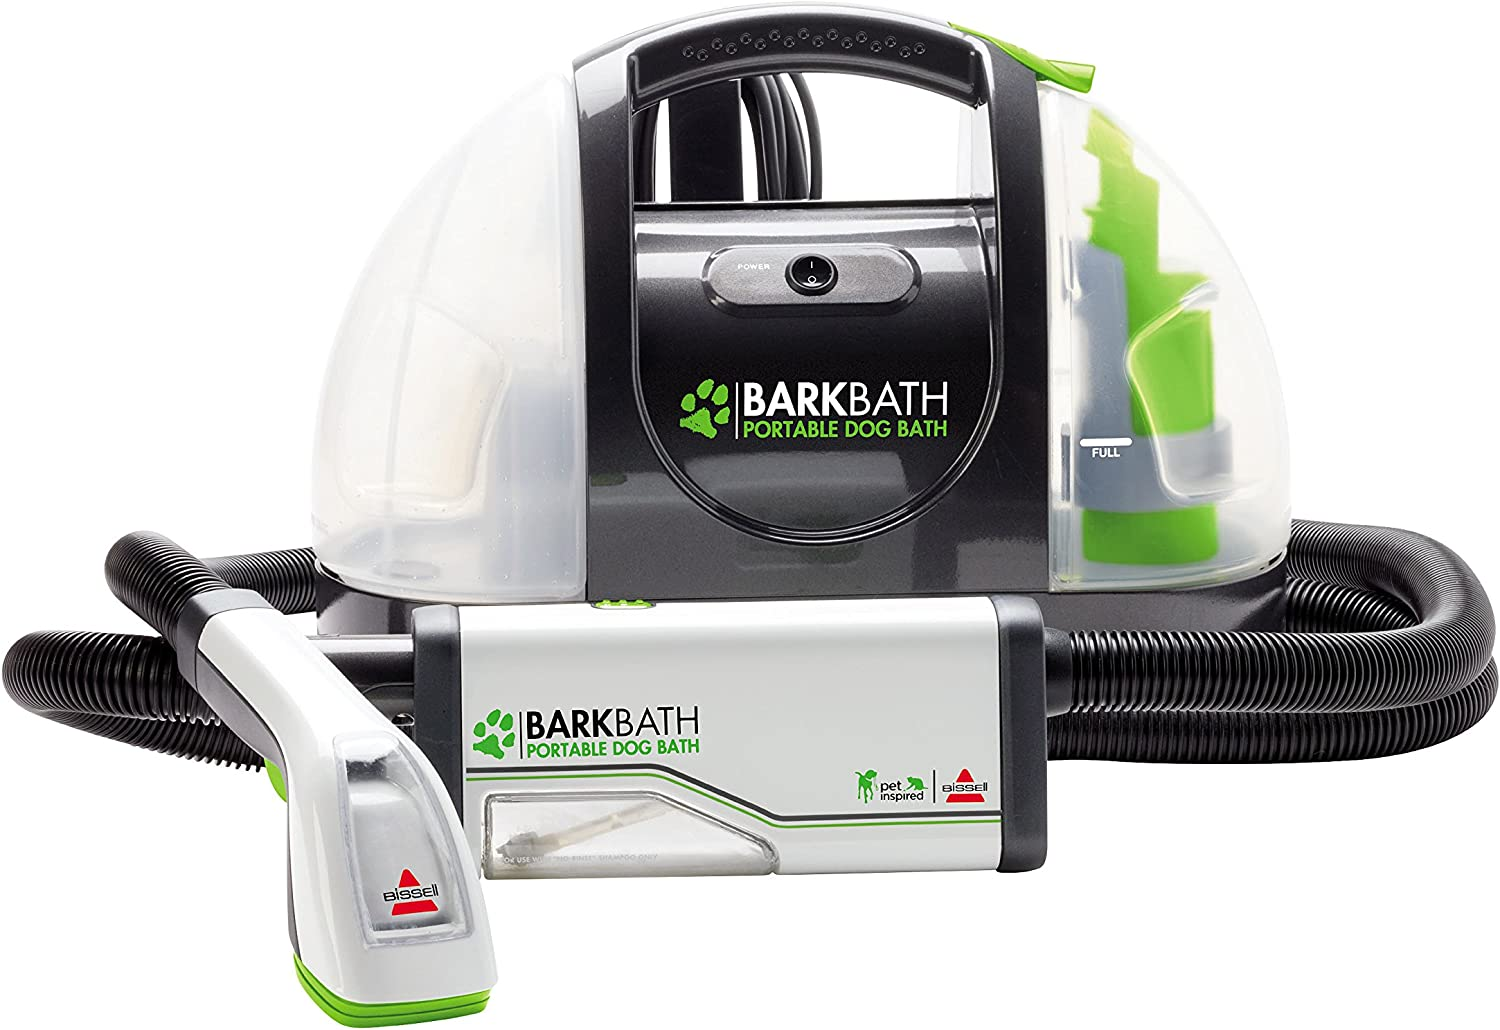 Bissell BARKBATH Portable Dog Bath and Grooming System, 1st Gen, 1844A